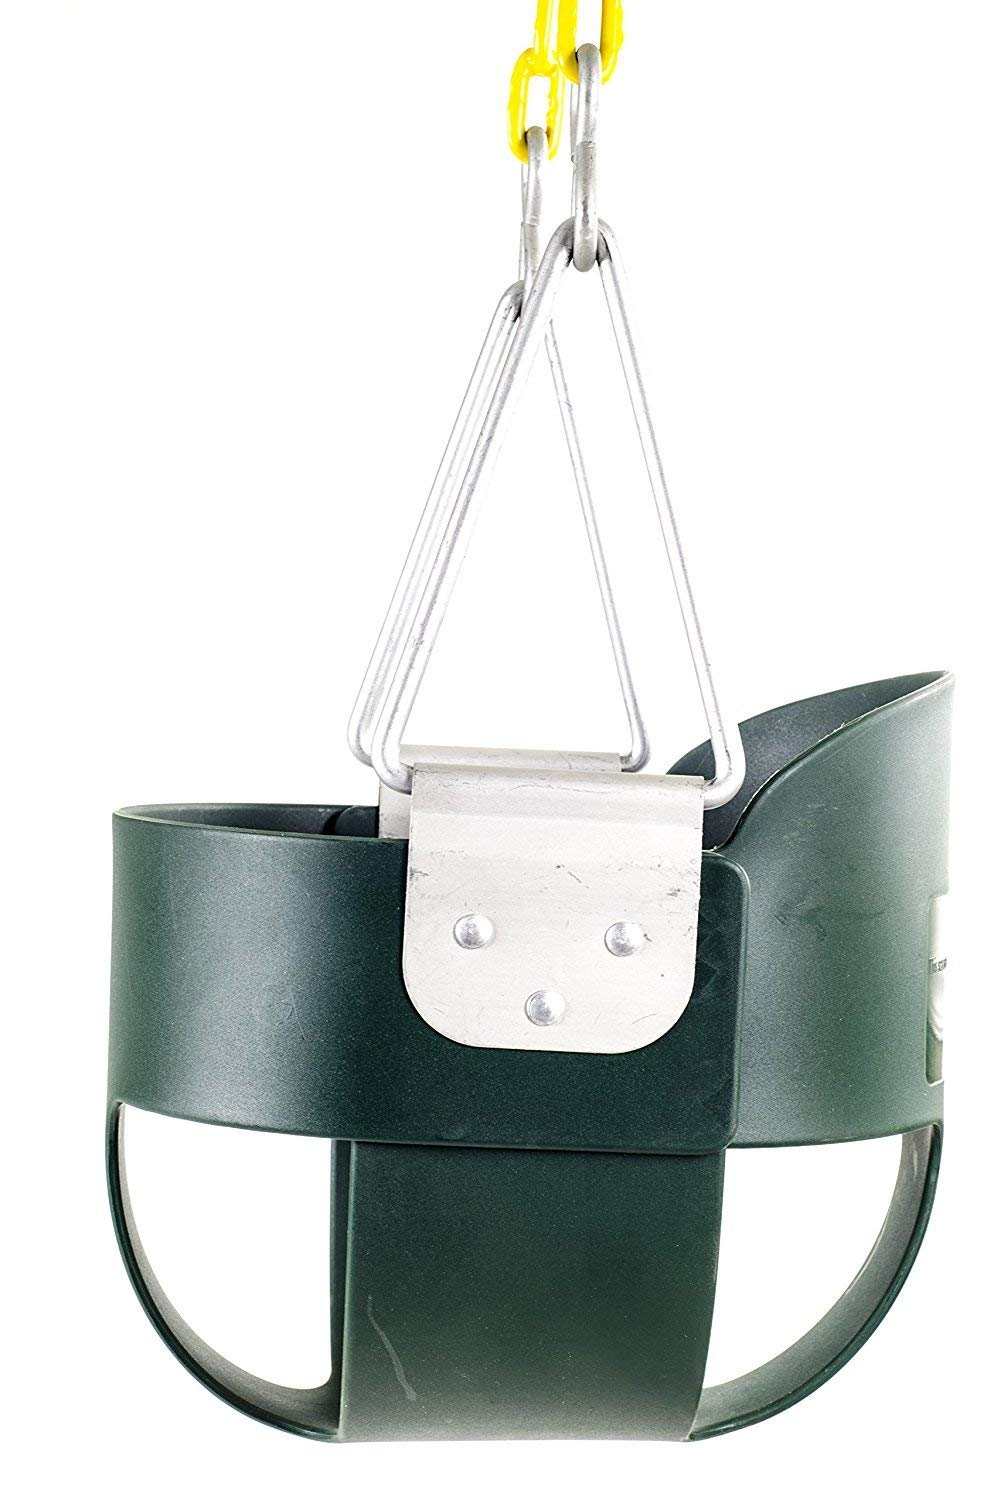 High Back Full Bucket Swing and Heavy Duty Swing Seat - Swing Set Accessories by Squirrel Products (Image #3)